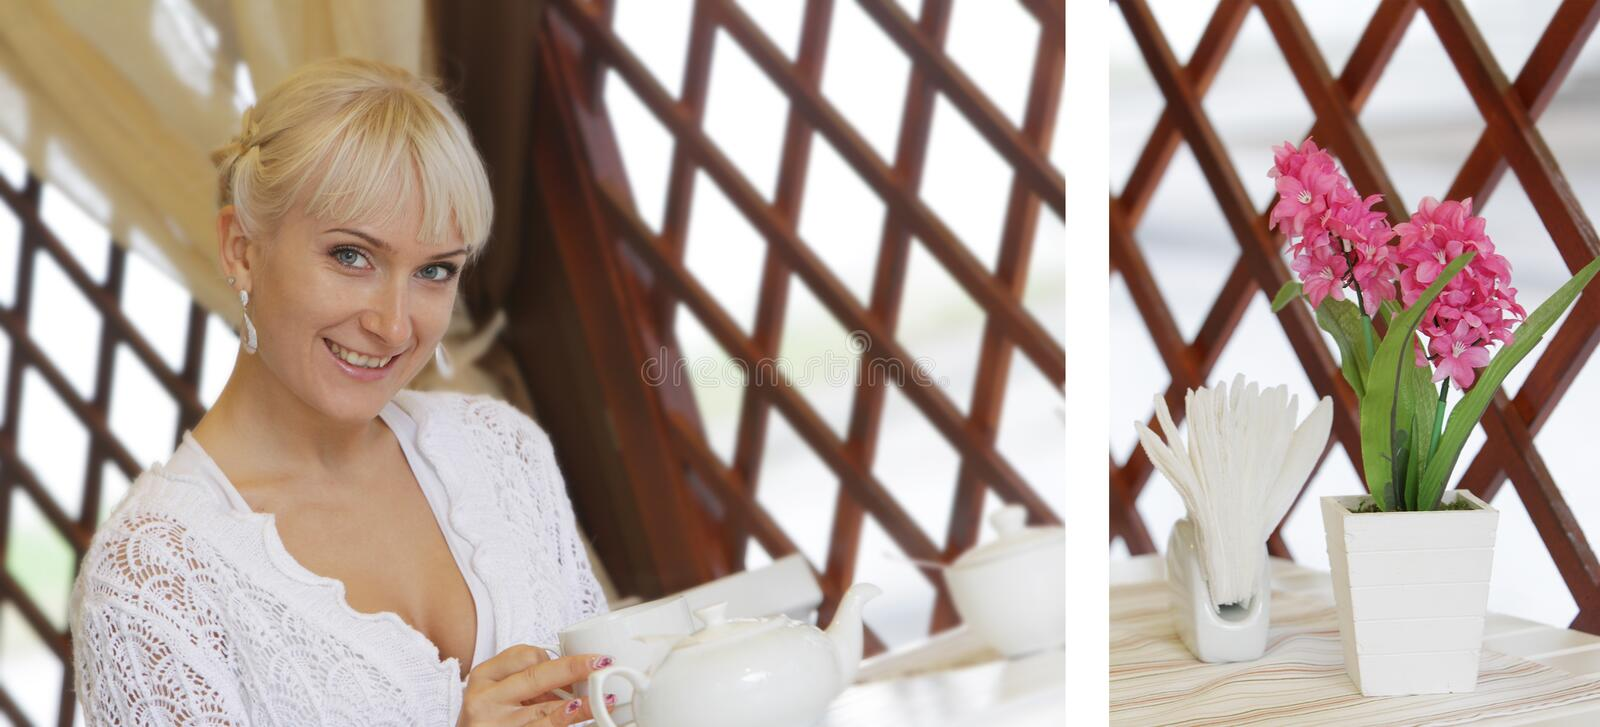 Happy woman in cafe / restaurant royalty free stock photos